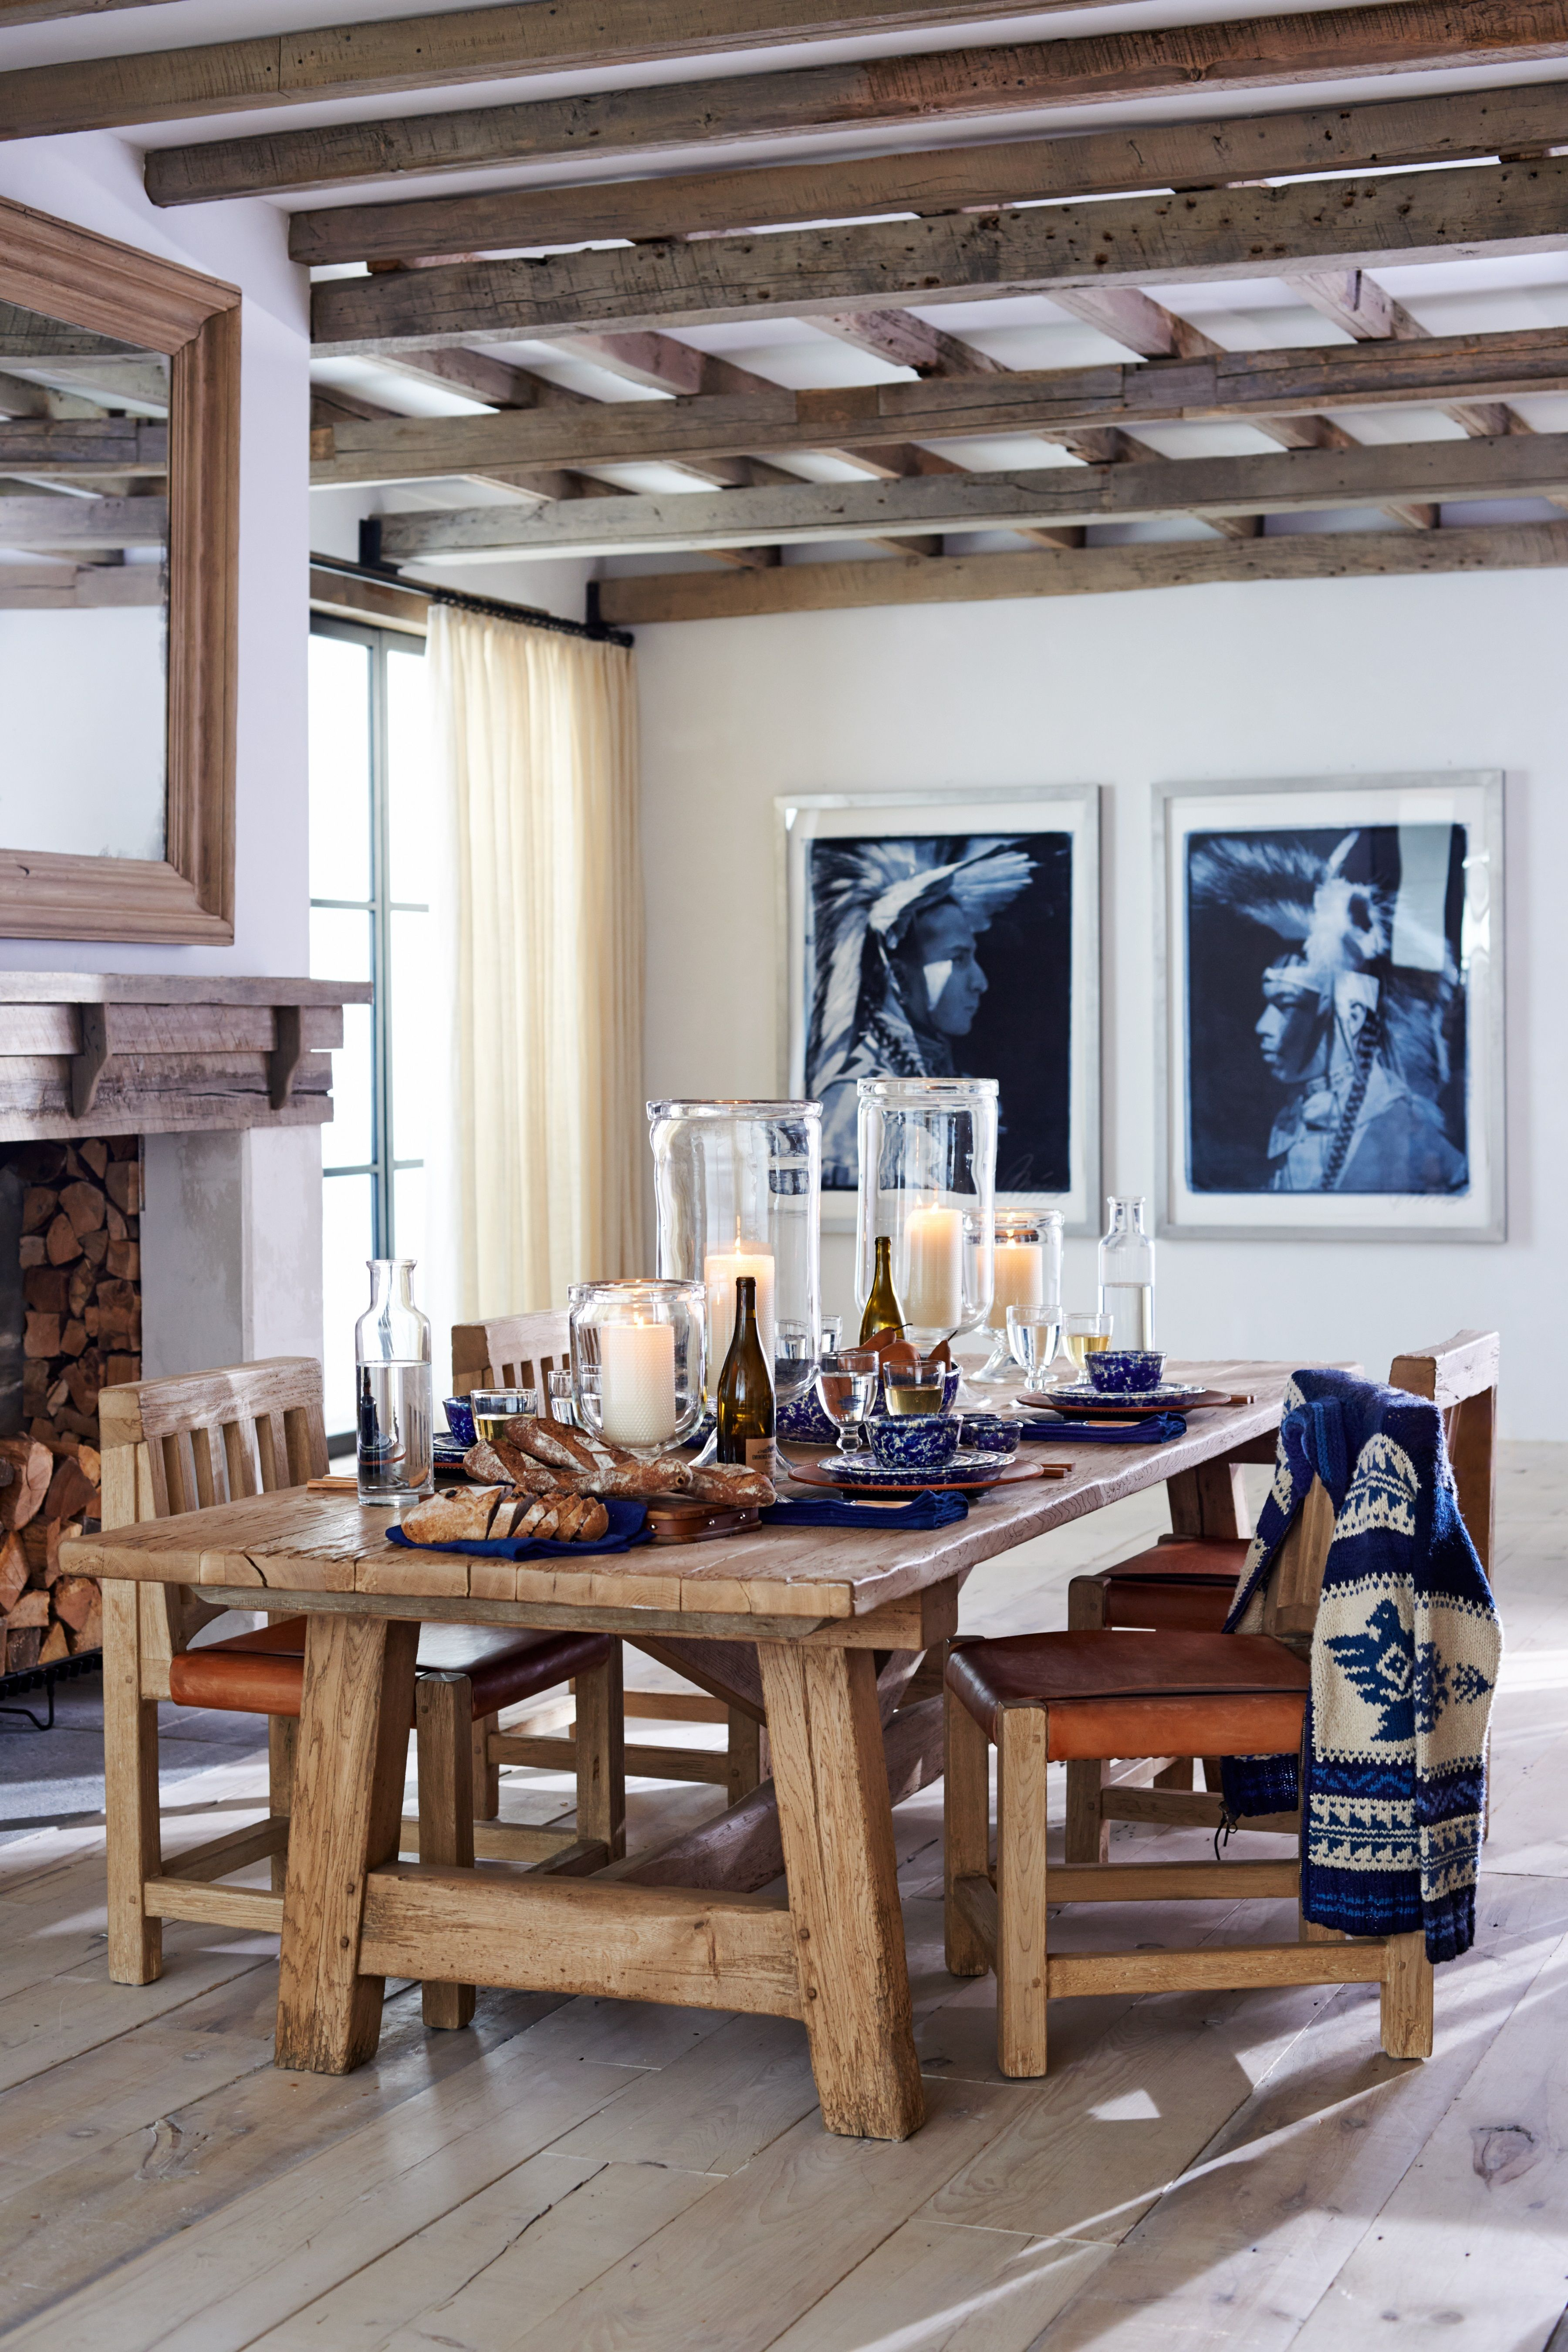 Ralph Lauren Home's rustic dining table in barn door oak sets a warm,  inviting tone